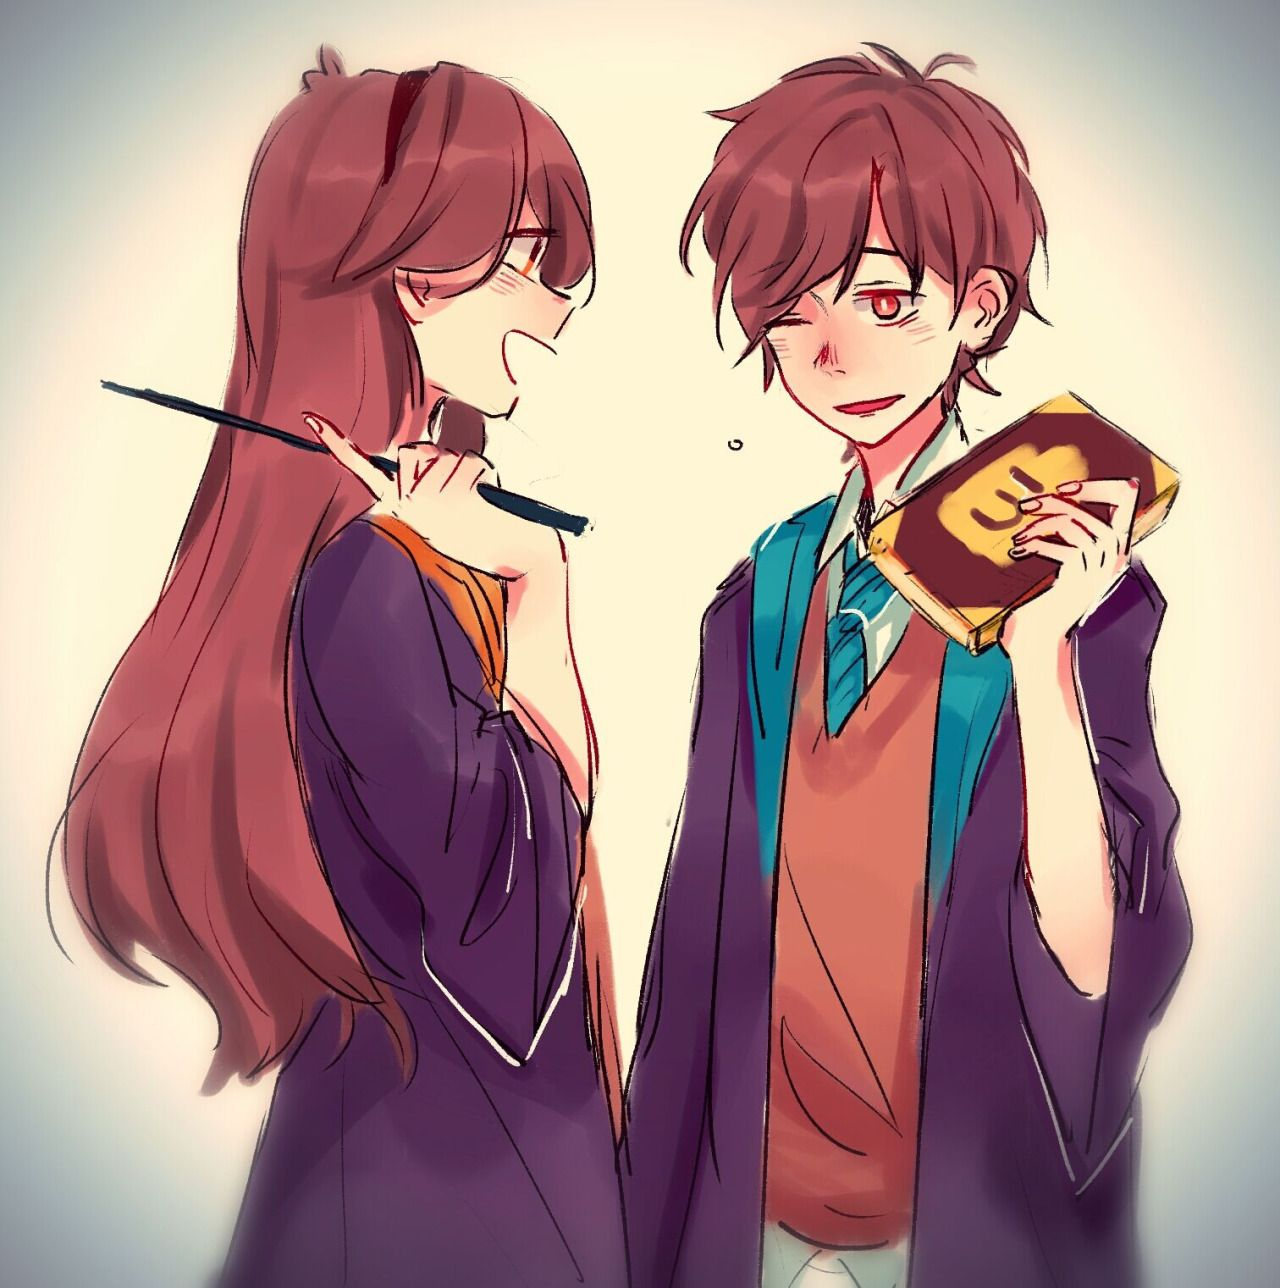 Art By Hatsukano Gravity Falls And Harry Potter Crossover